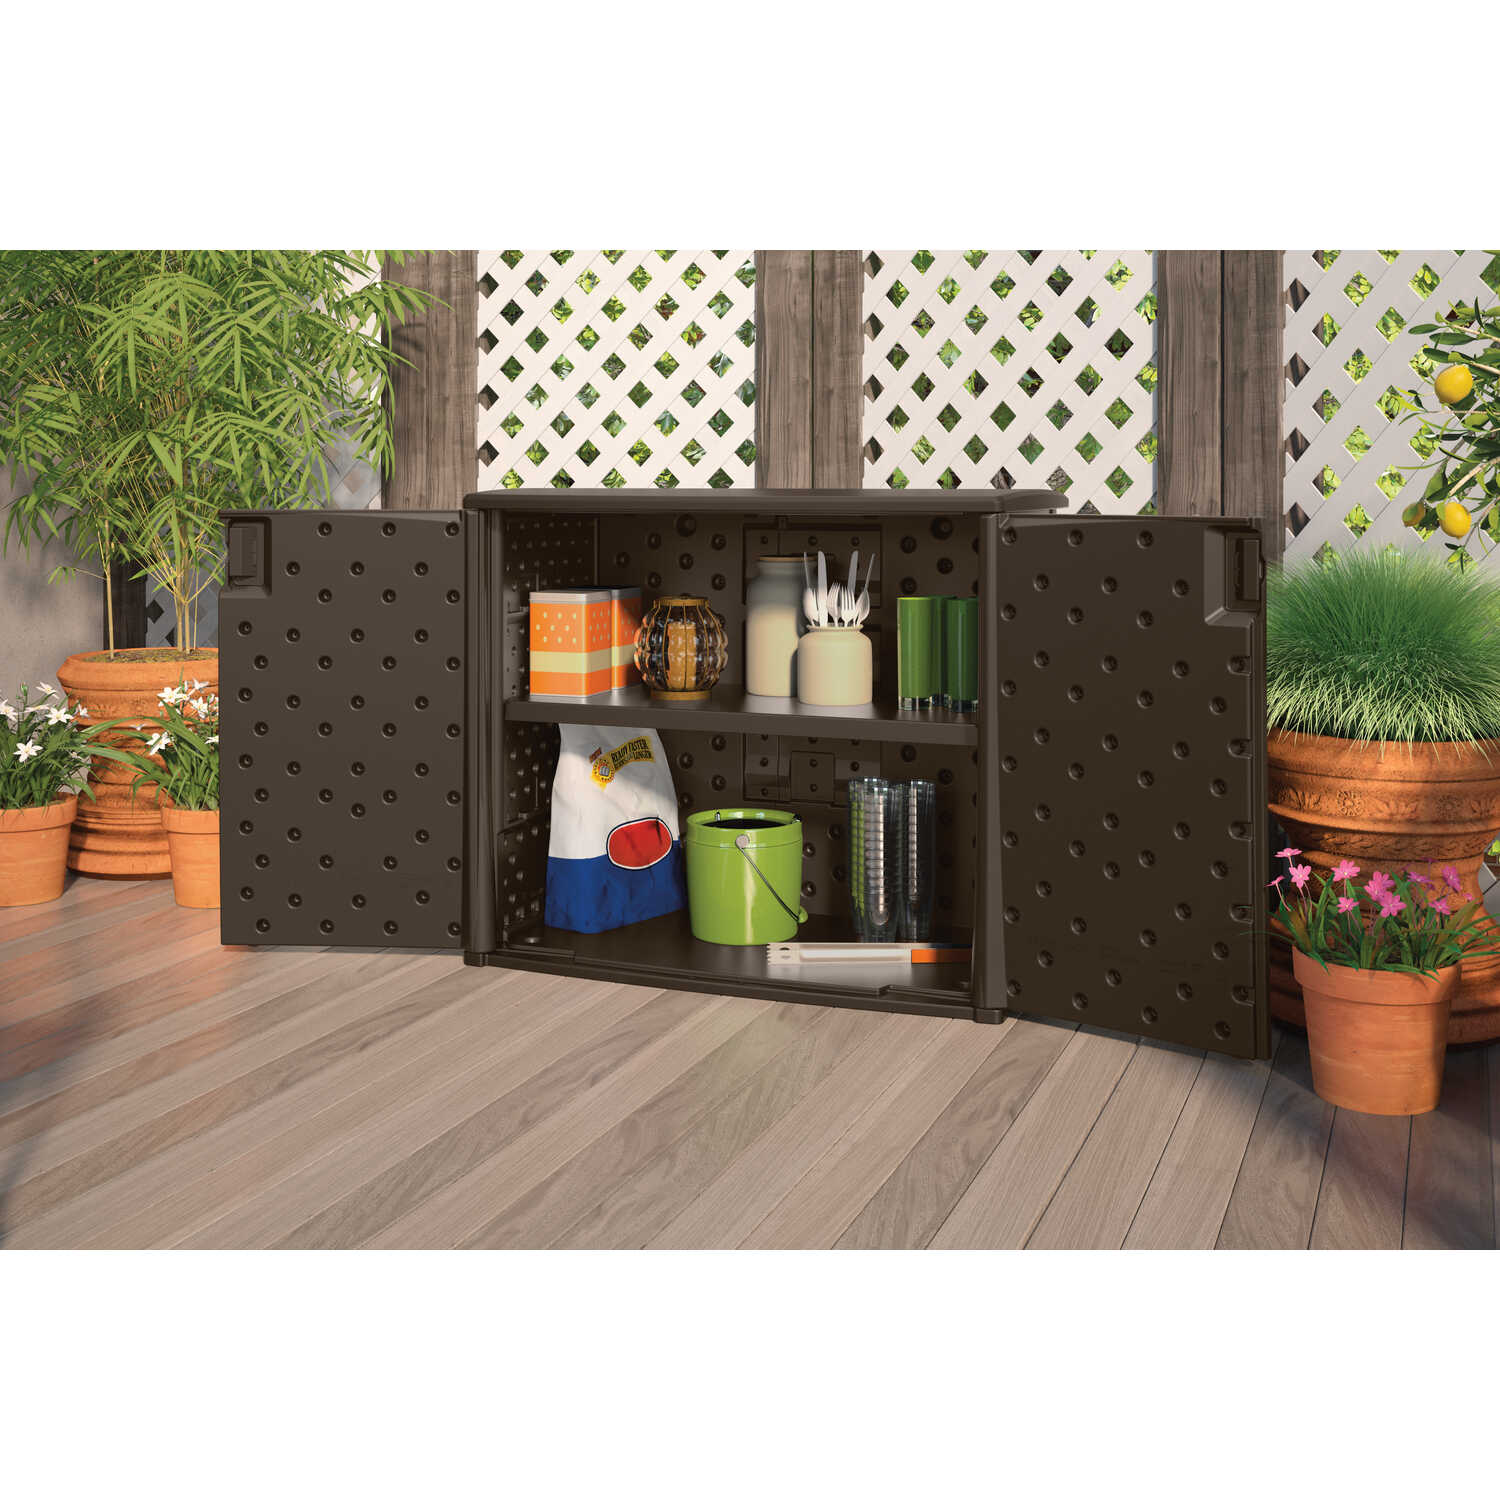 Suncast  Resin  35-1/4 in. H x 42-1/4 in. W x 23 in. D Brown  Outdoor Storage Cabinet